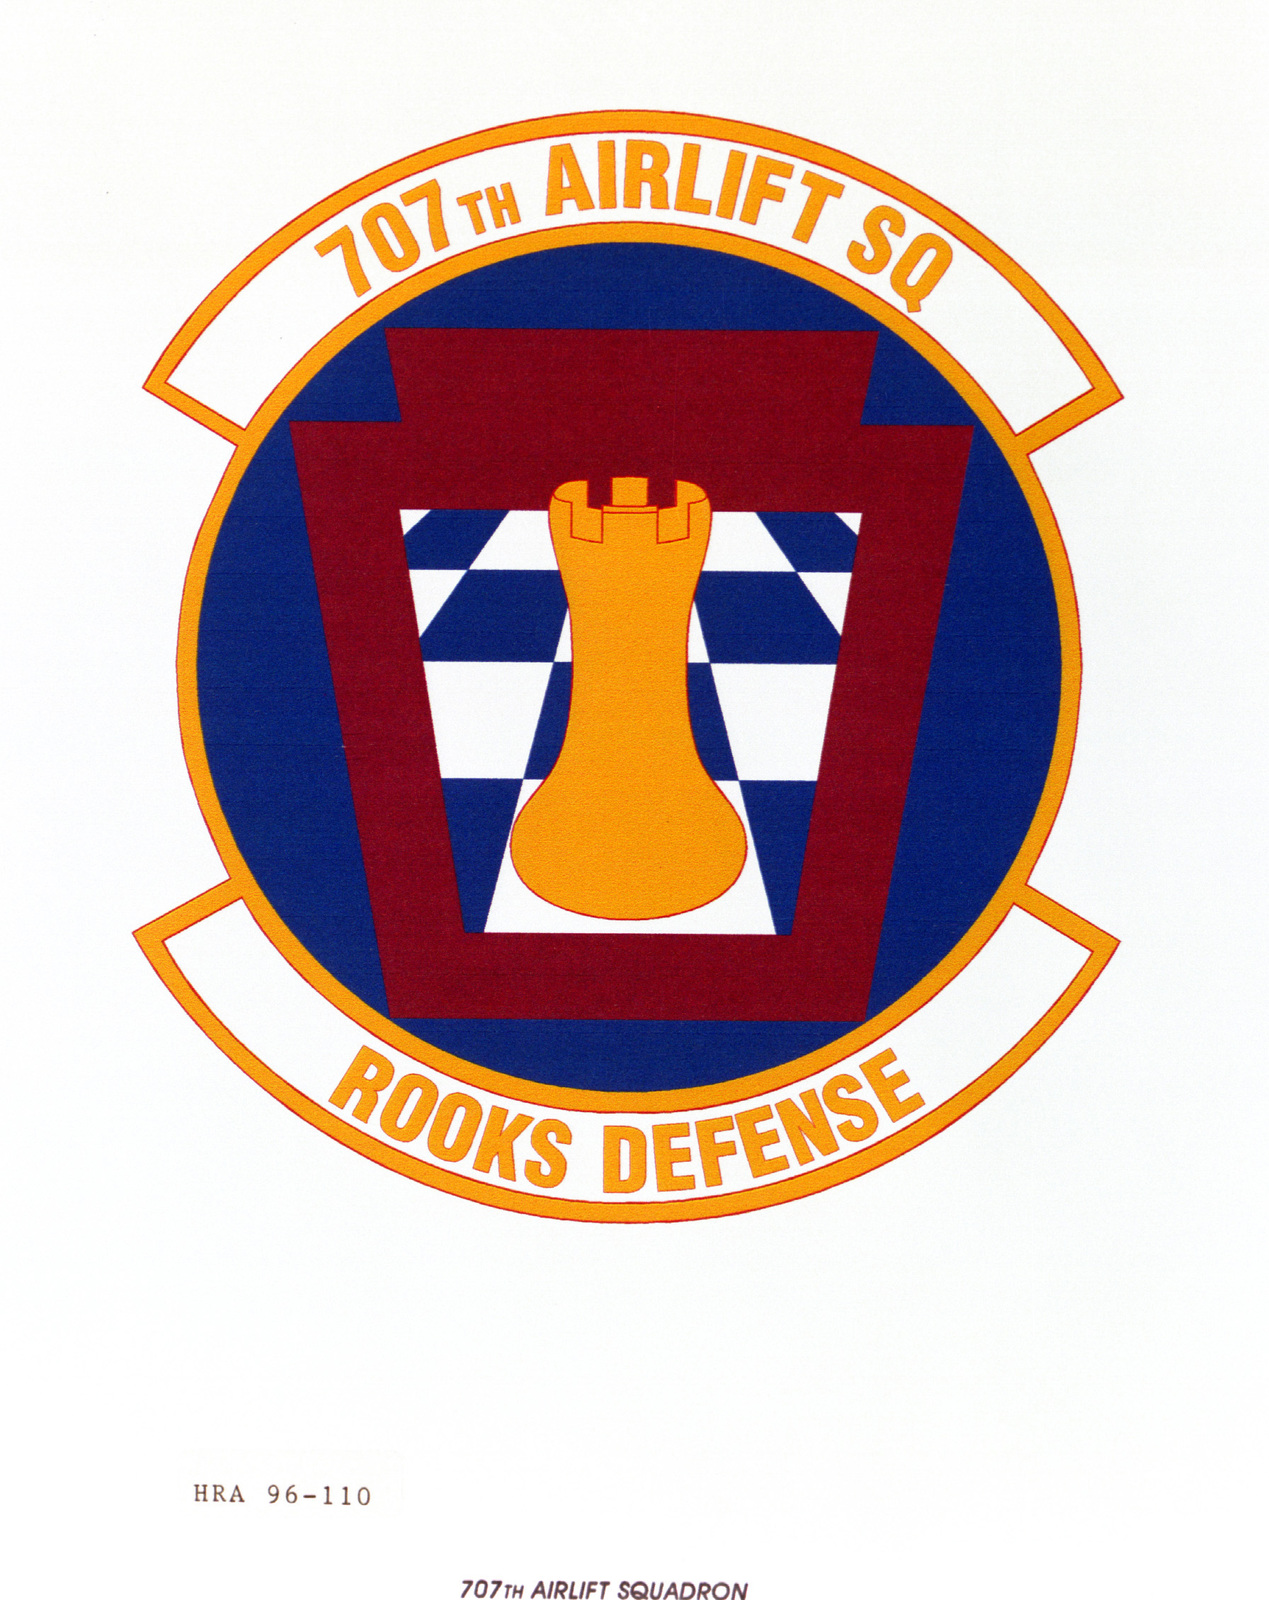 Air Force Organizational Emblem. 707th Airlift Squadron Exact Date Shot Unknown